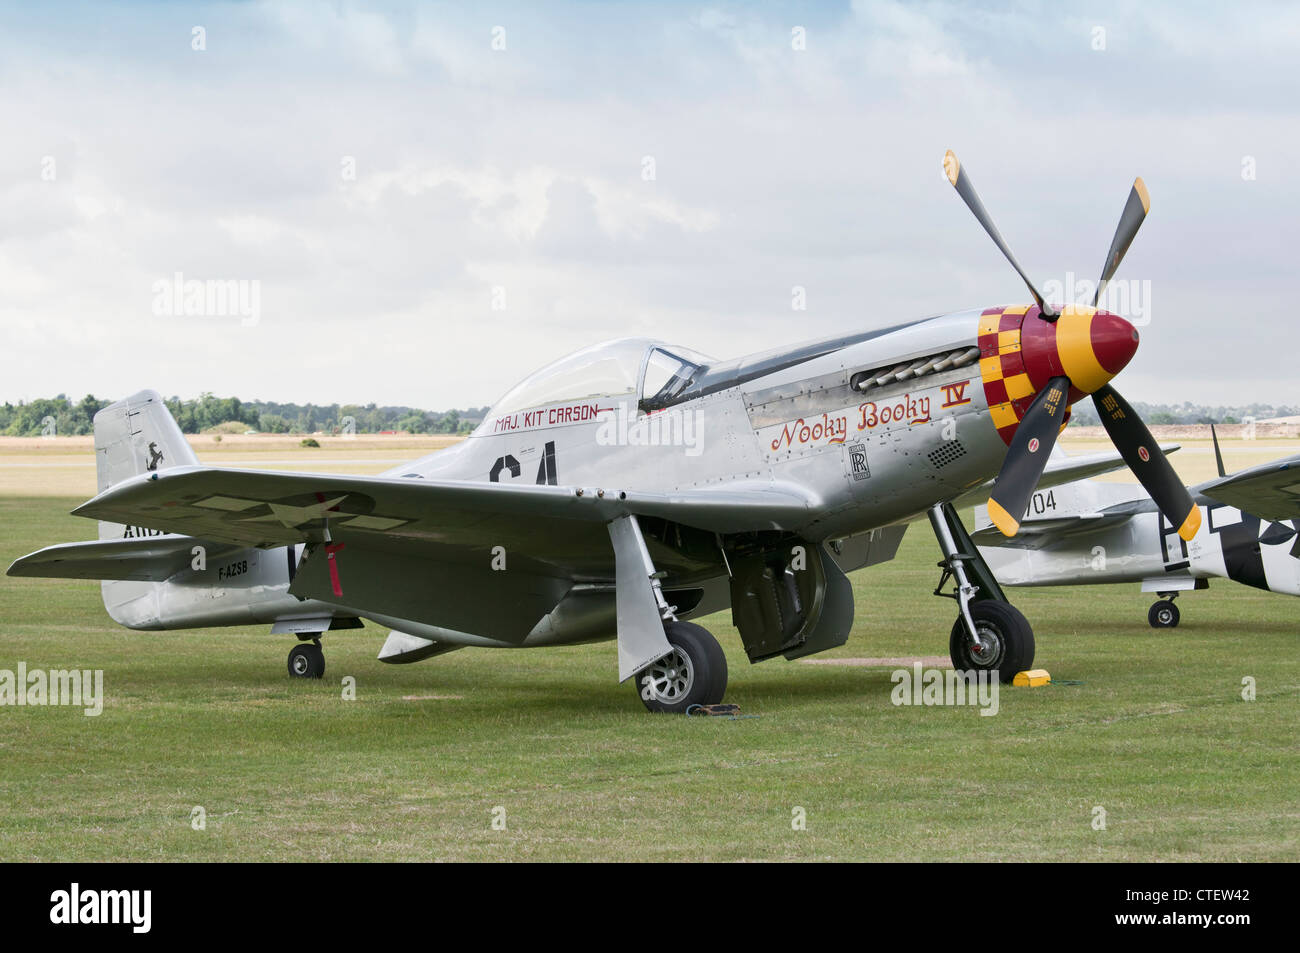 P-51 Mustang 'Nooky Booky IV' at the Flying Legends Airshow 2011, Imperial War Museum, Duxford - Stock Image